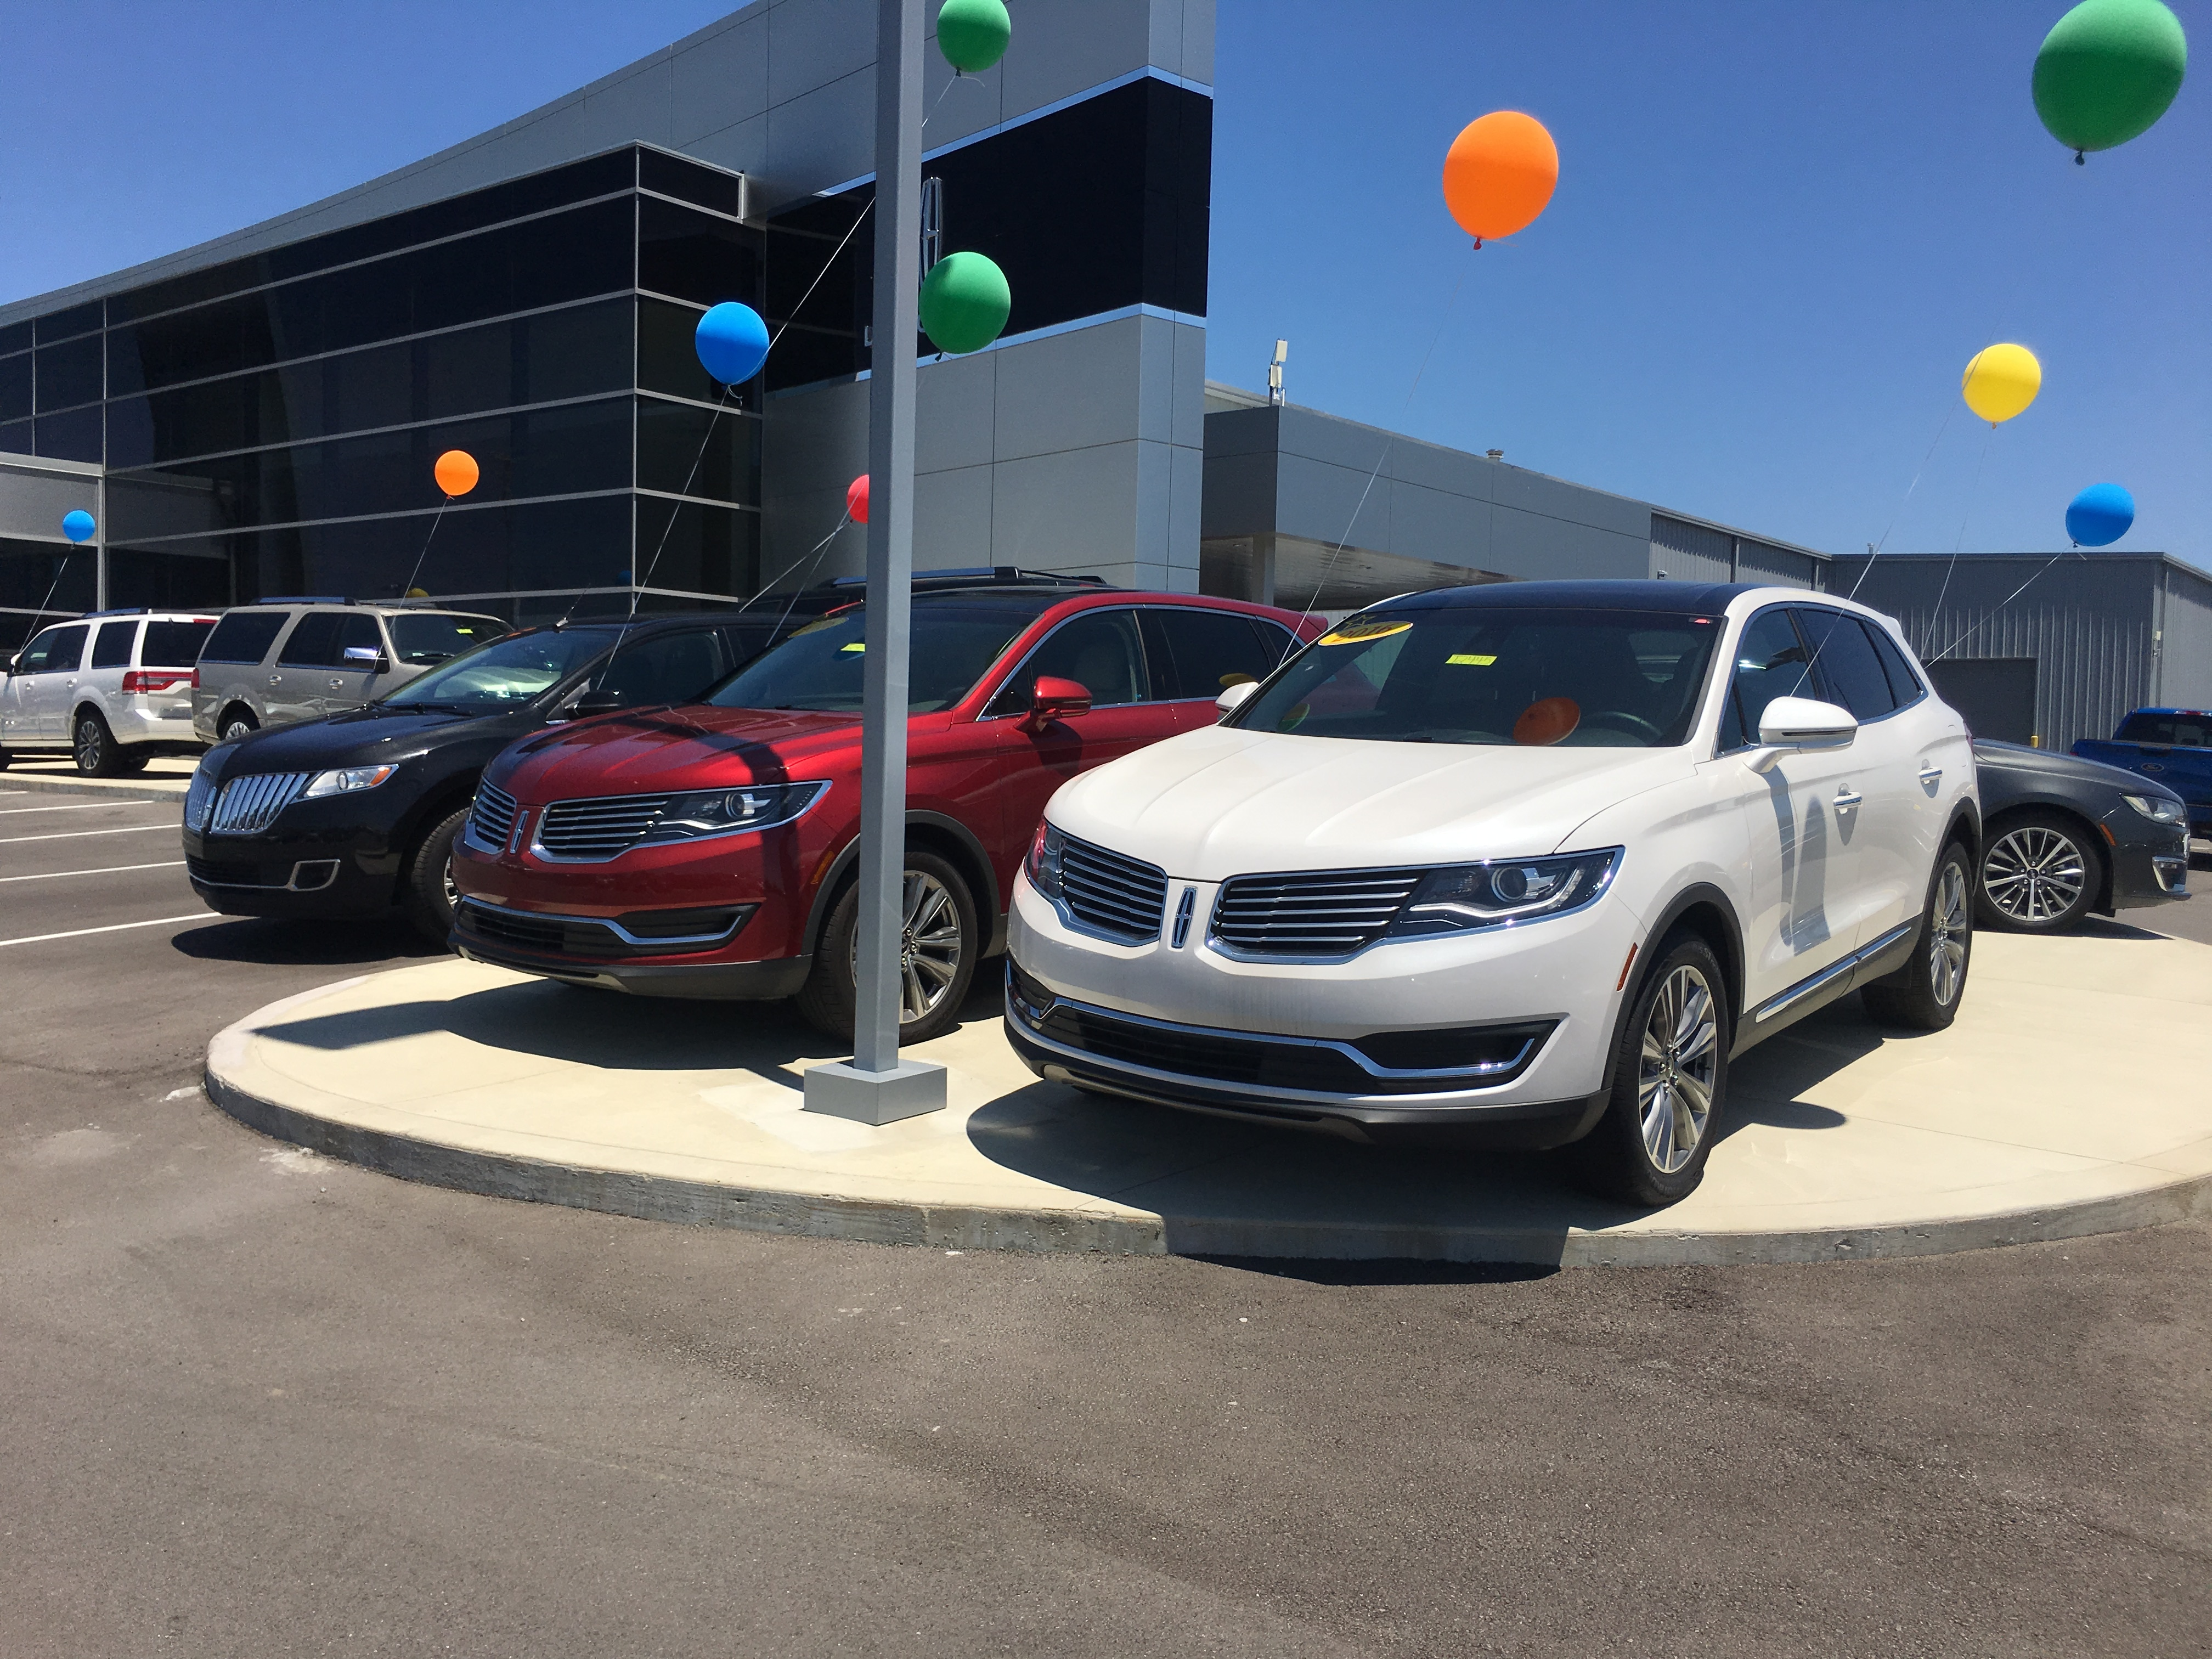 brand mercury experience cars lincoln selling has dealerships rather dealership than the